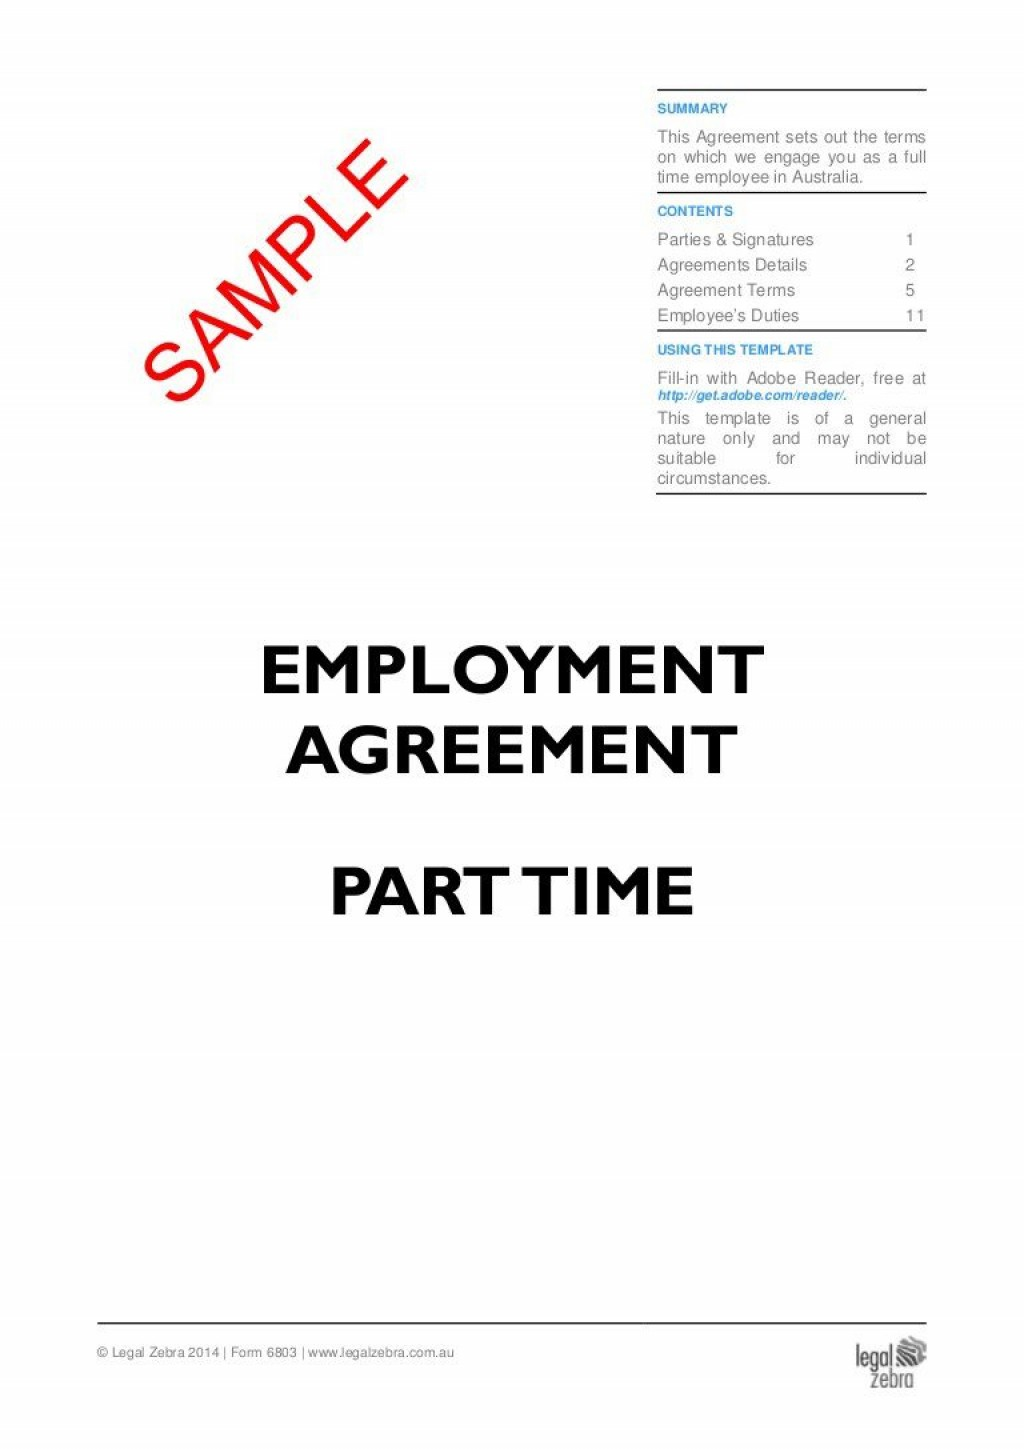 007 Wonderful Free Employment Contract Template High Definition  Templates Bc Temporary South Africa IrelandLarge